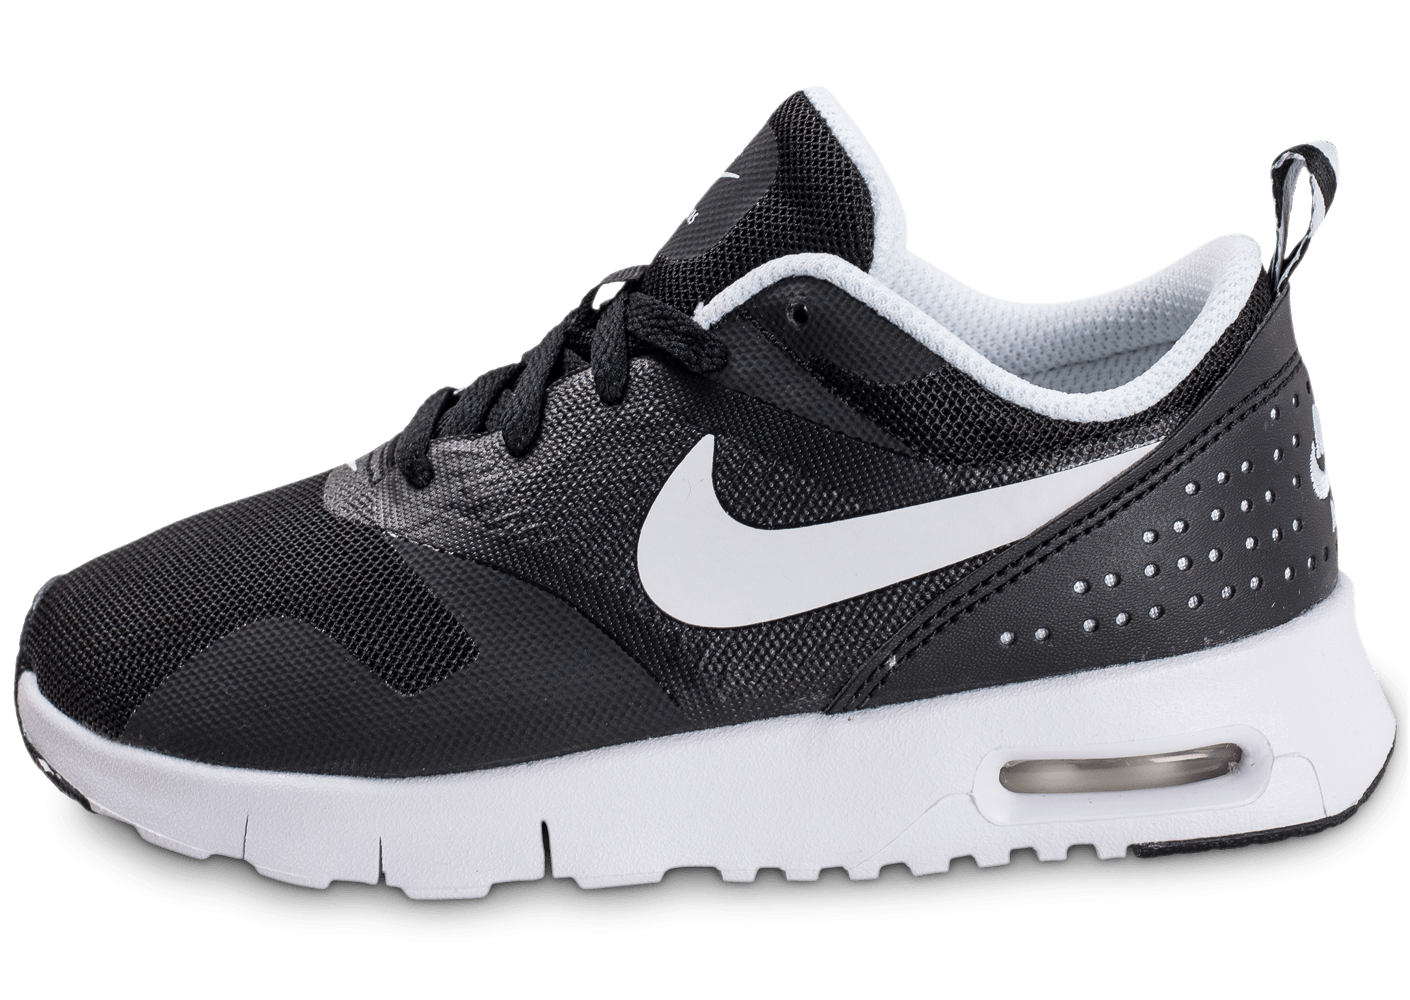 nike air max tavas enfant noire et blanche chaussures enfant chausport. Black Bedroom Furniture Sets. Home Design Ideas